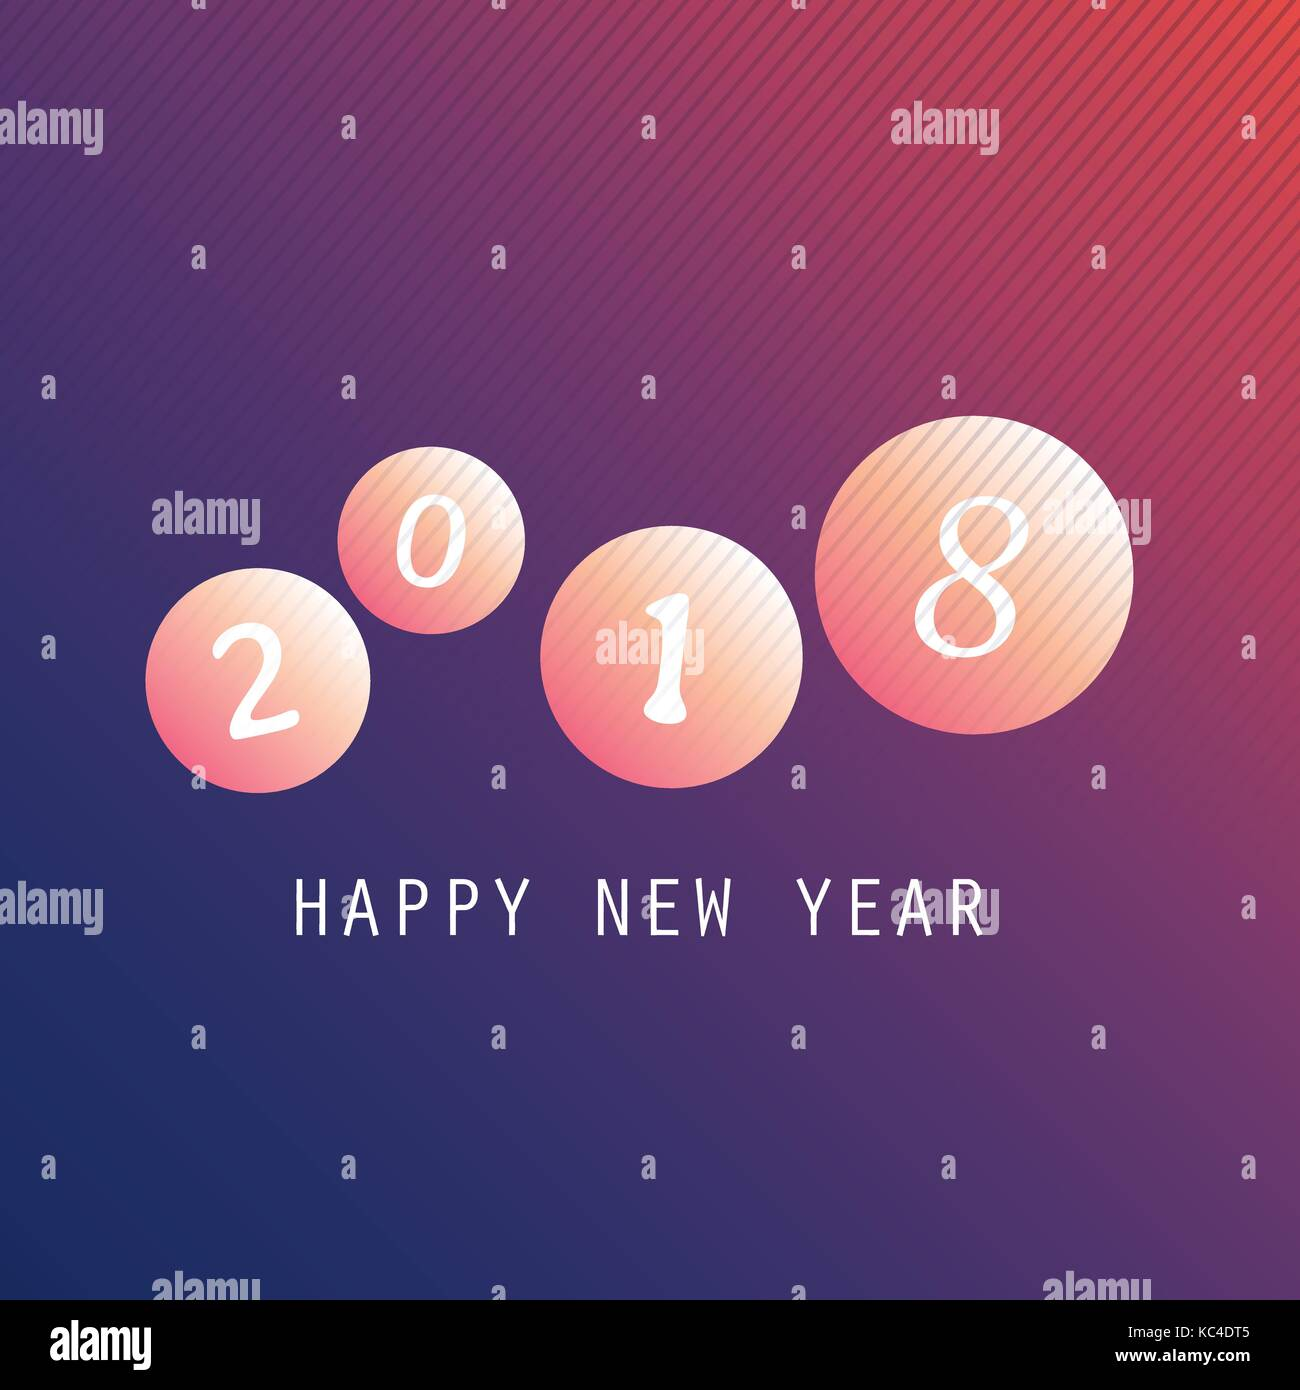 best wishes abstract modern style happy new year greeting card cover or background creative design template 2018